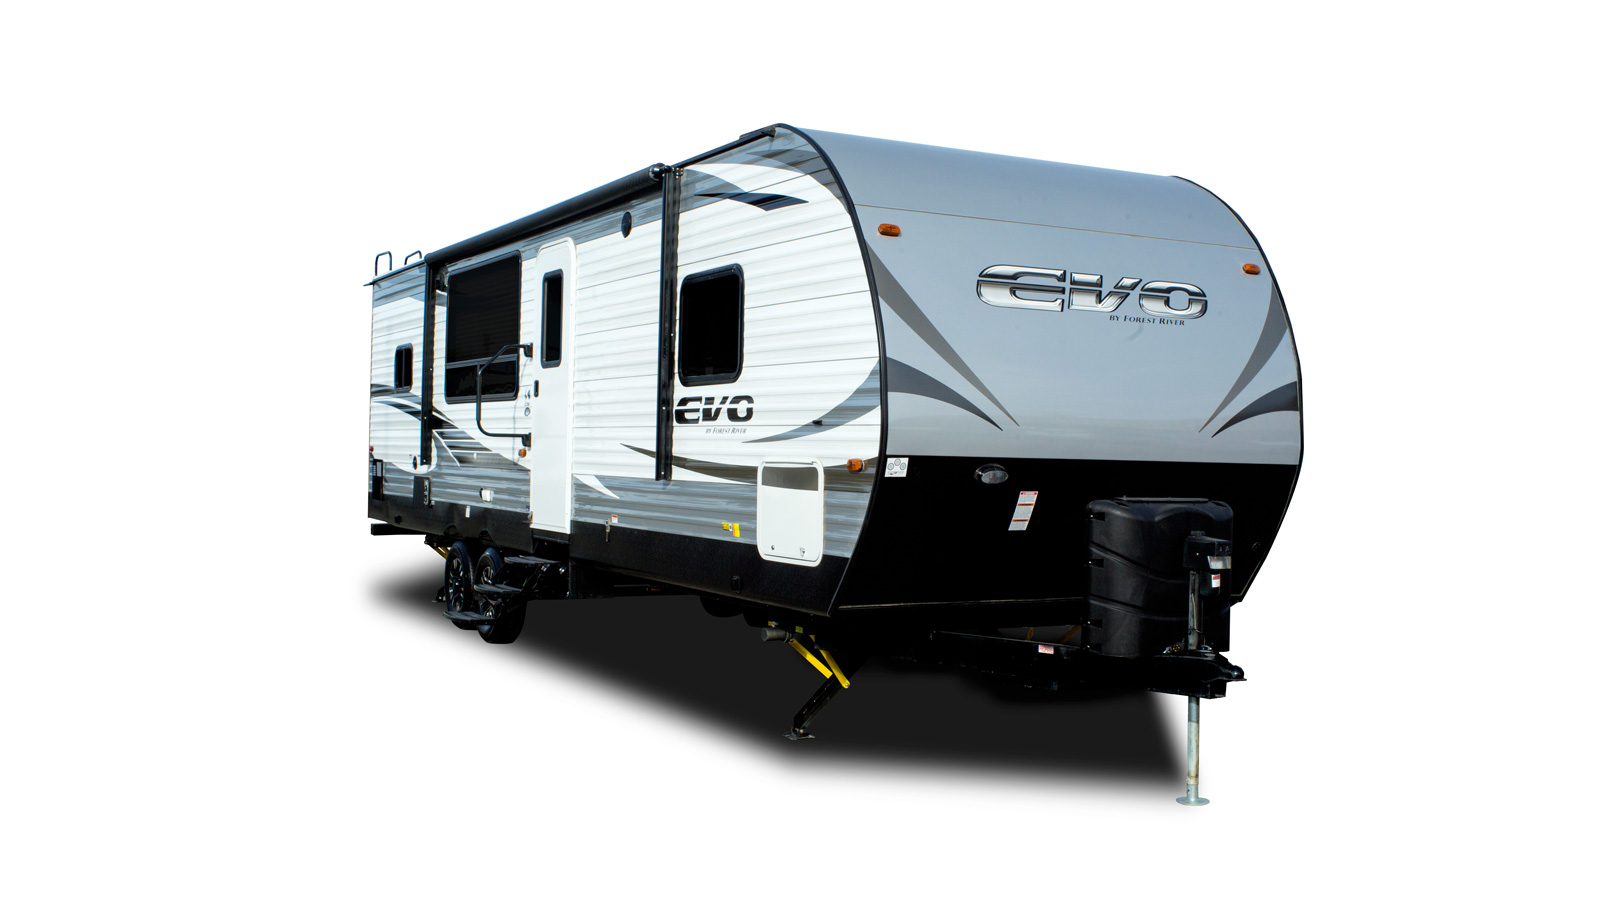 Evo | Forest River RV - Manufacturer of Travel Trailers